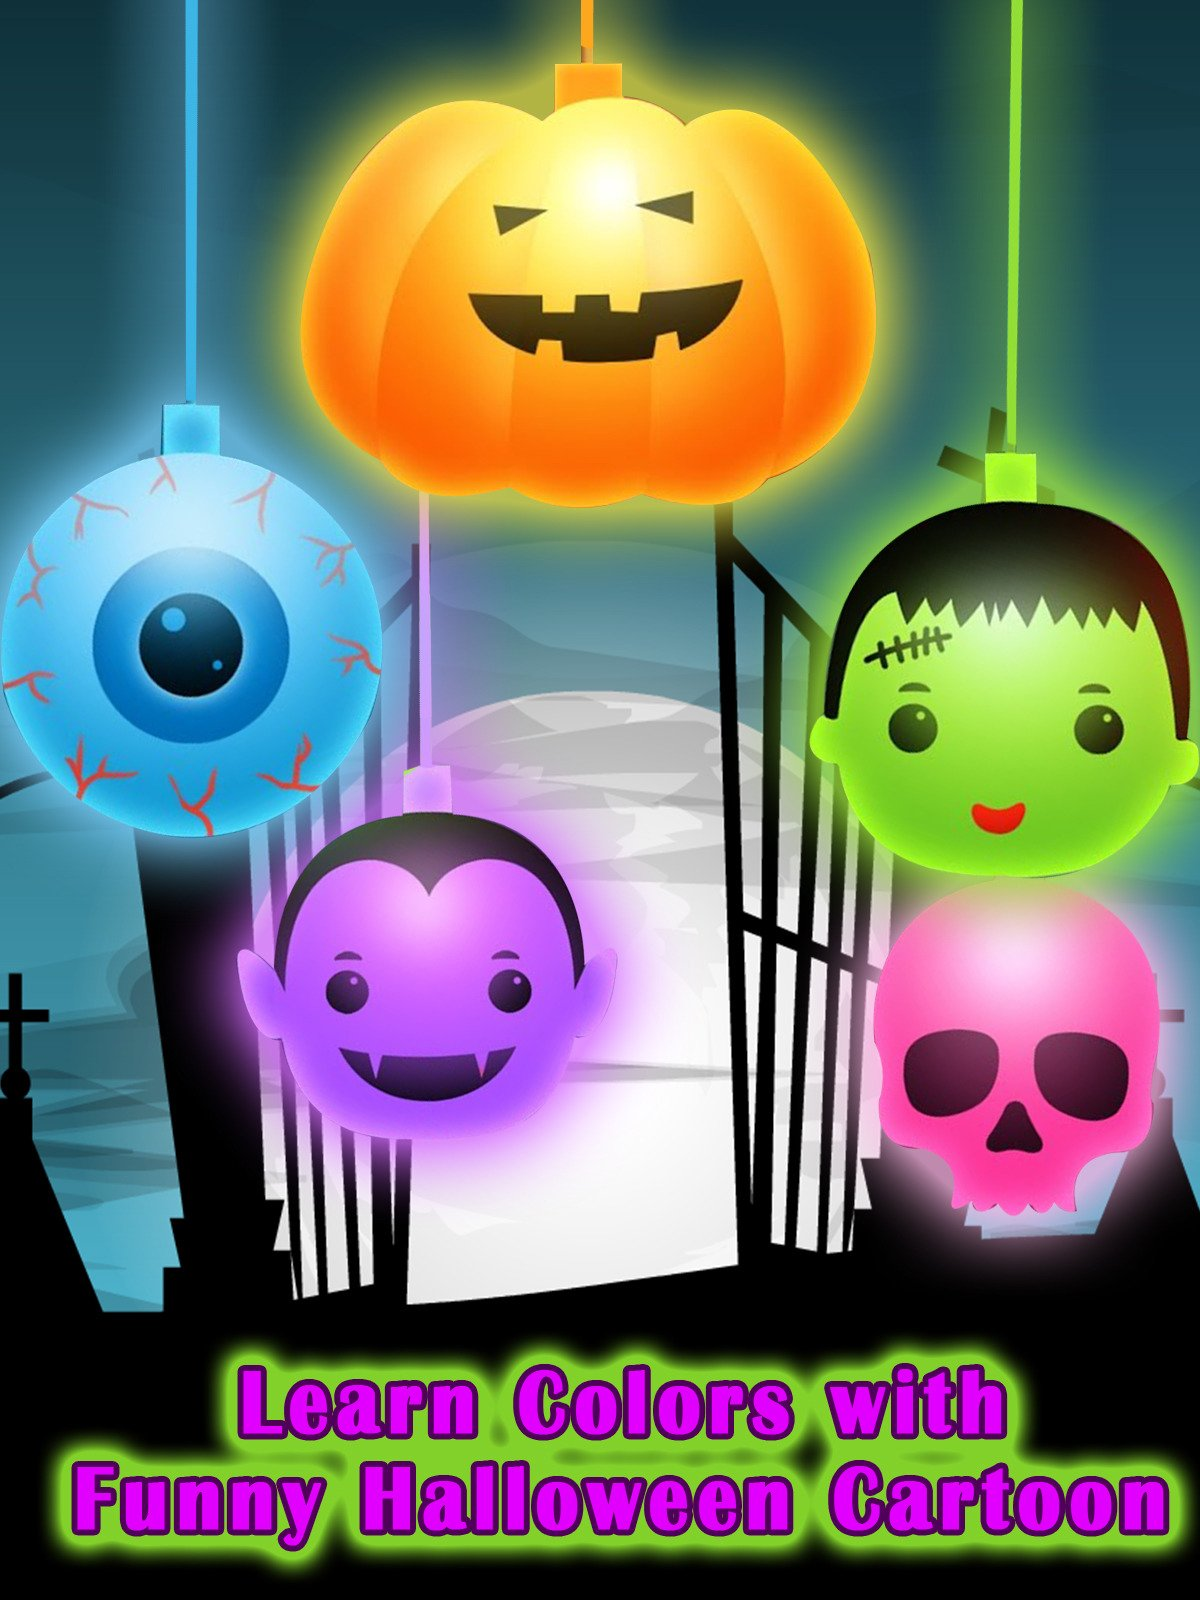 Learn Colors with Funny Halloween Cartoon